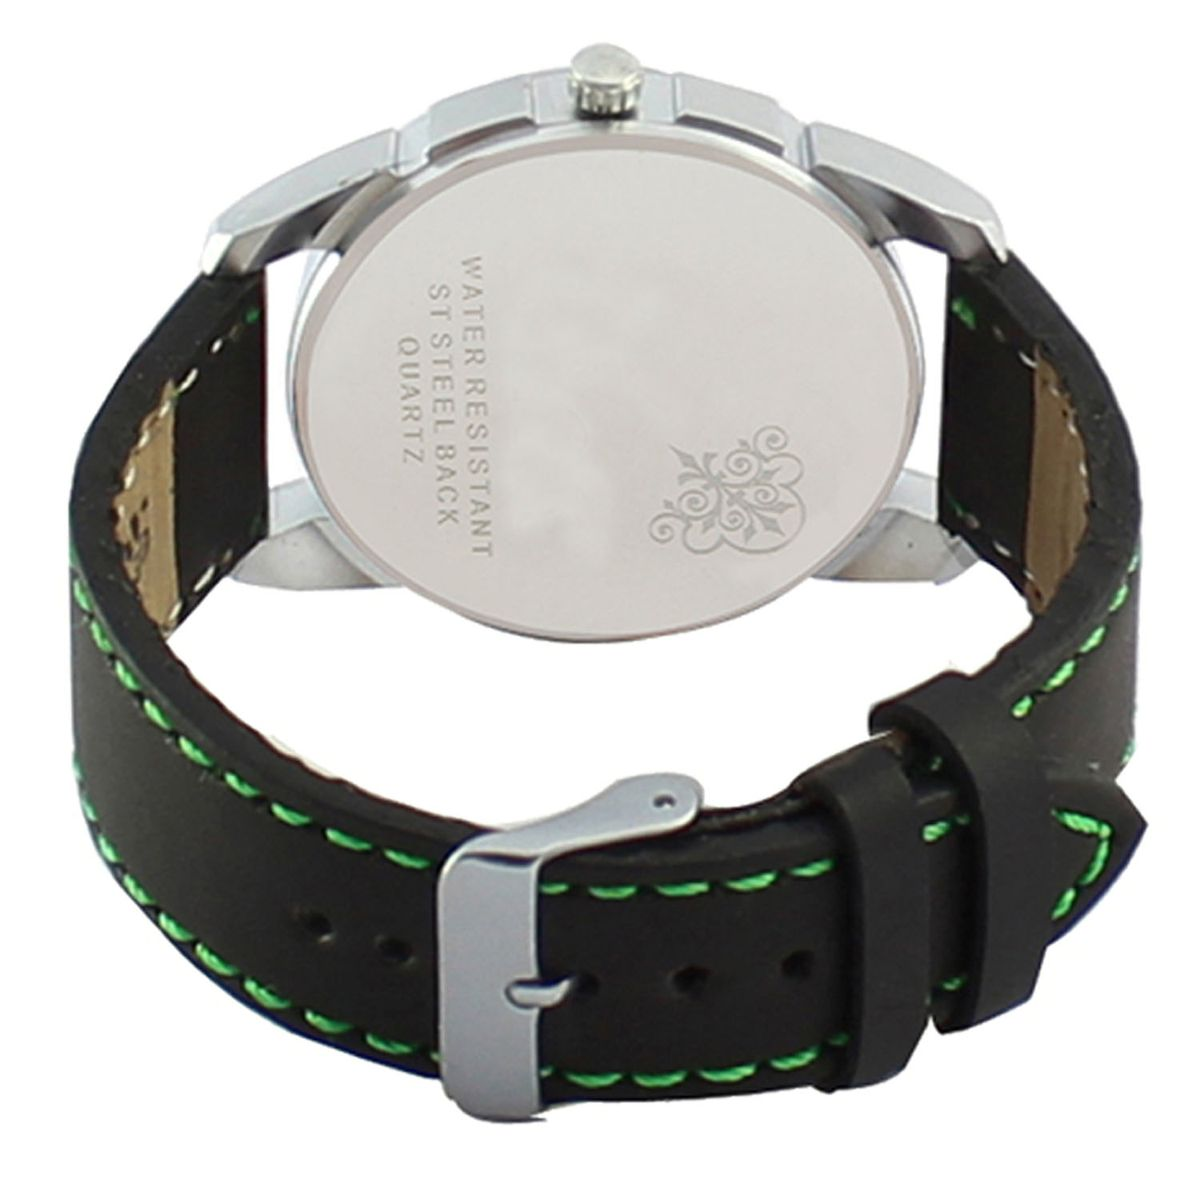 The Shopoholic Analog Multicolour Dial Black Leather Belt Watches Men-Watches Boys